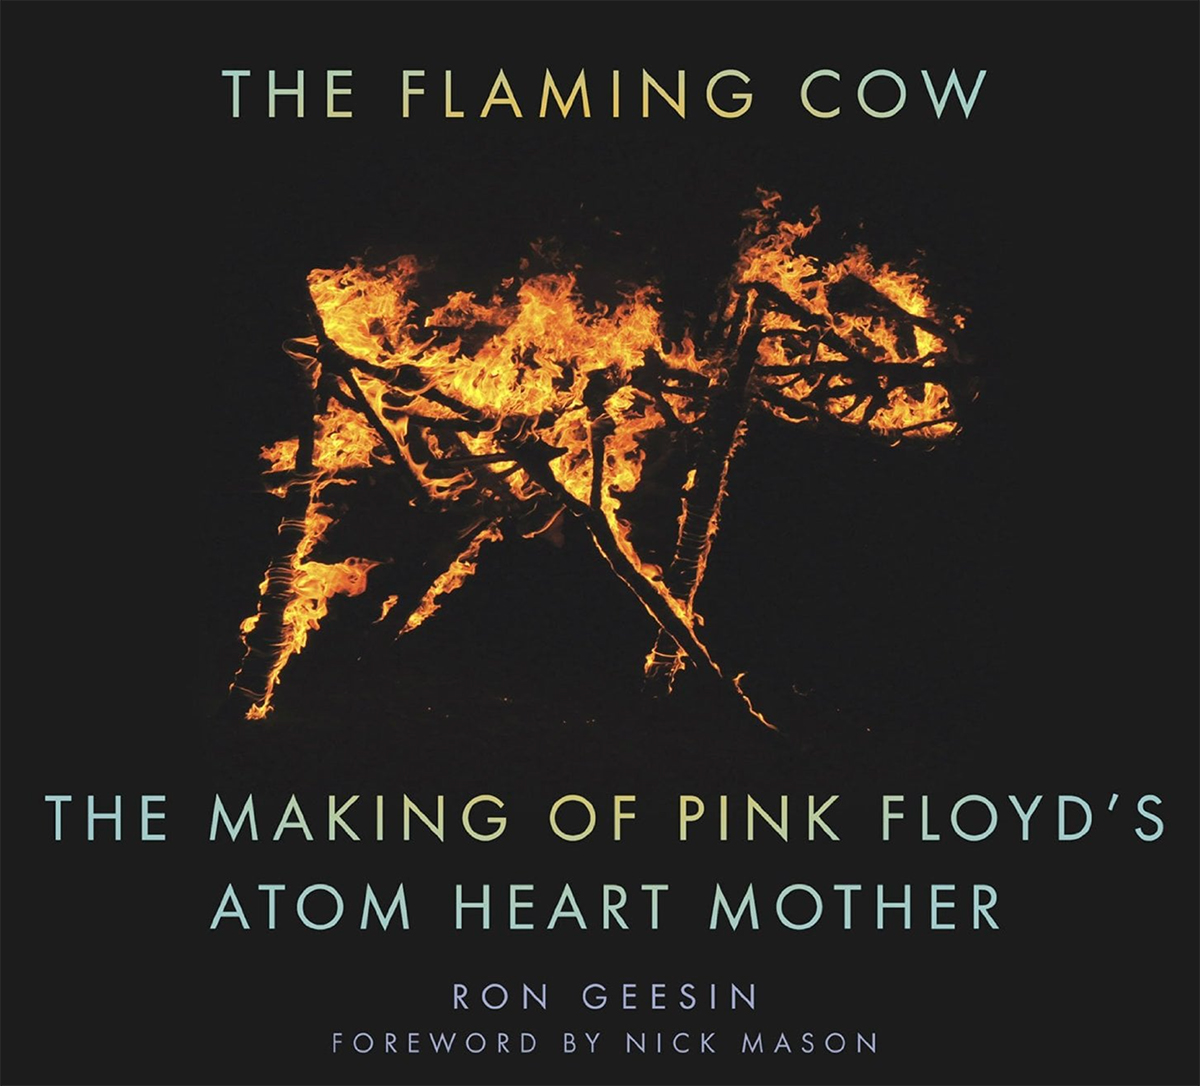 Atom Heart Mother The Book by Ron Geesin